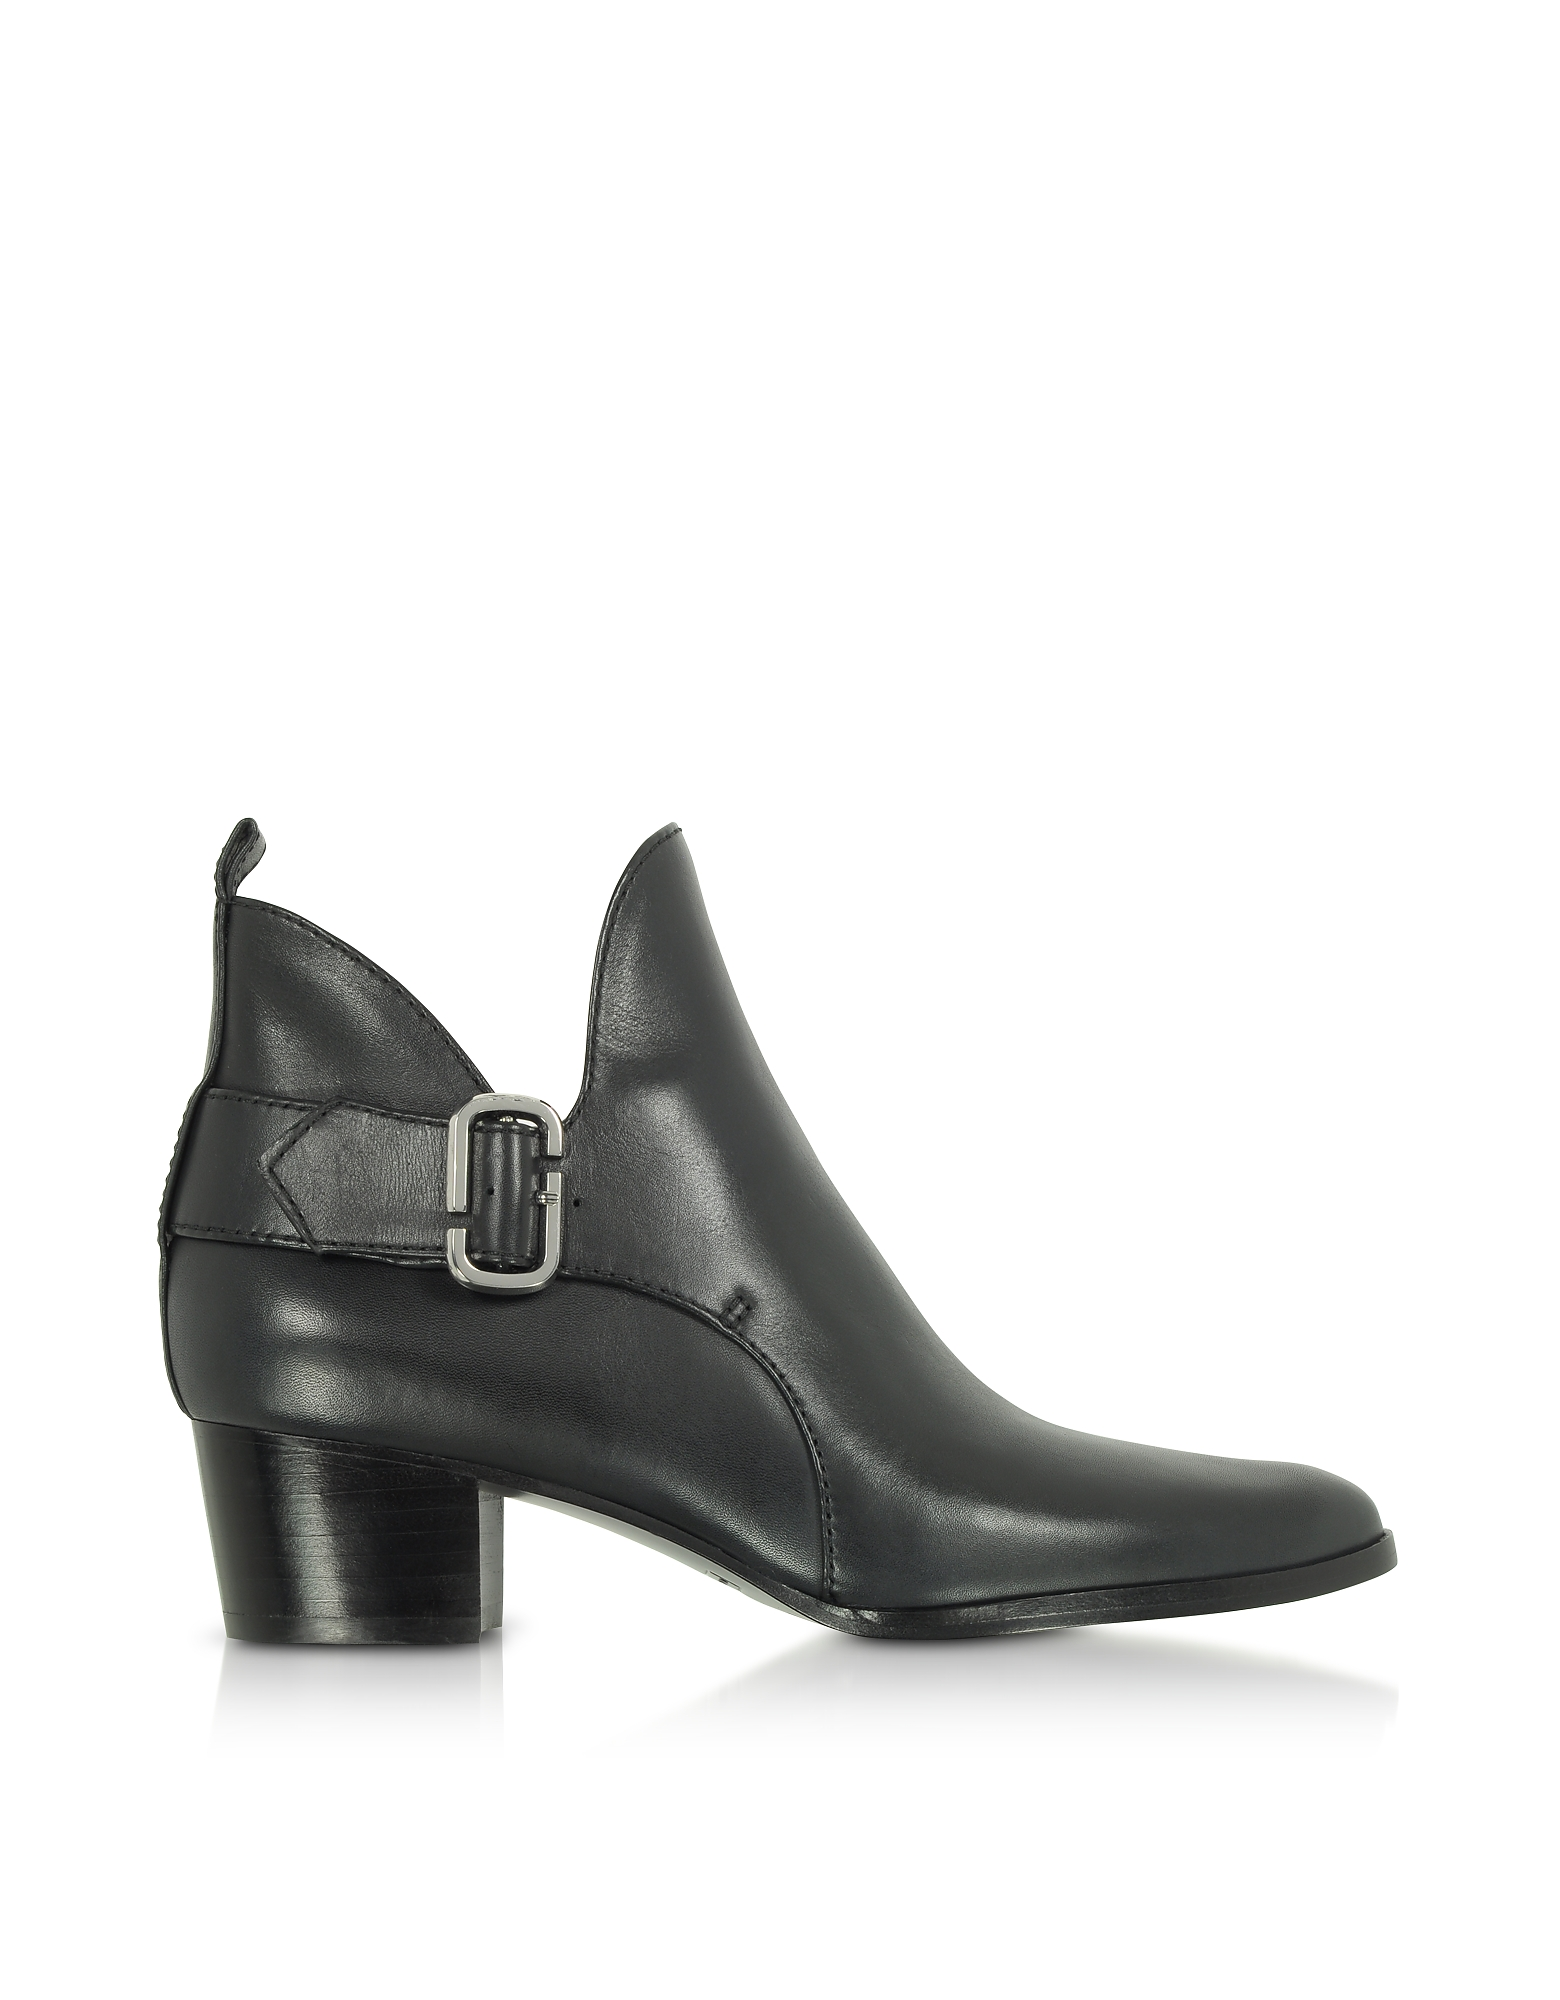 Marc Jacobs Shoes, Black Leather Ginger Interlock Ankle Boots